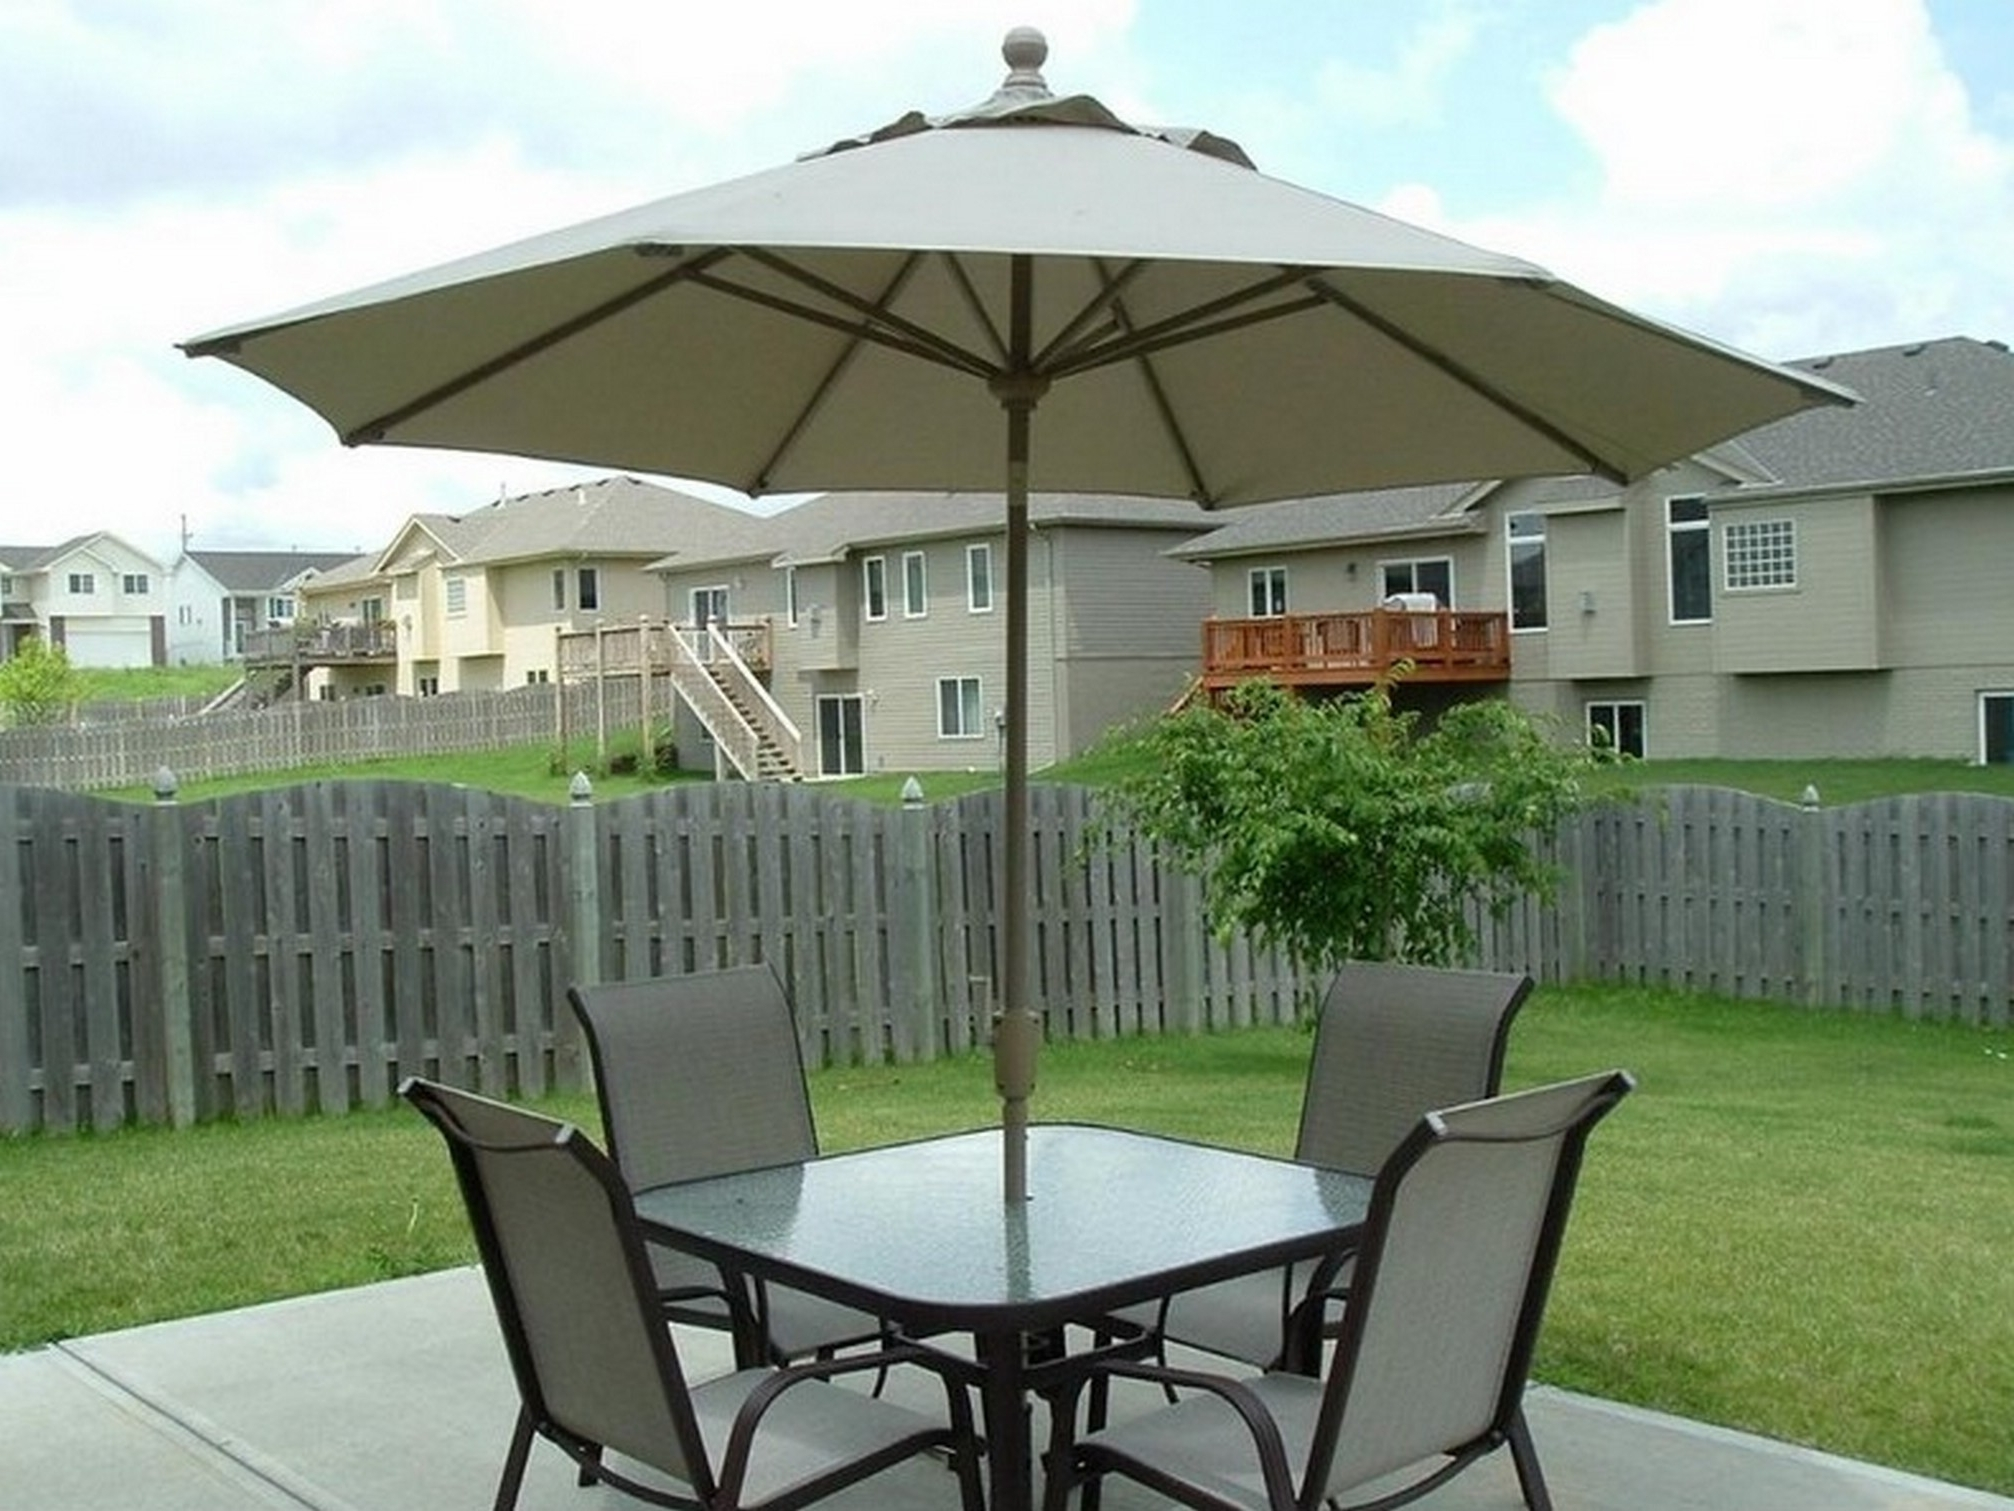 Luxury Bar Height Patio Table Concept Of Rotating Patio Umbrella Pertaining To Most Current Patio Umbrellas For Bar Height Tables (View 5 of 20)